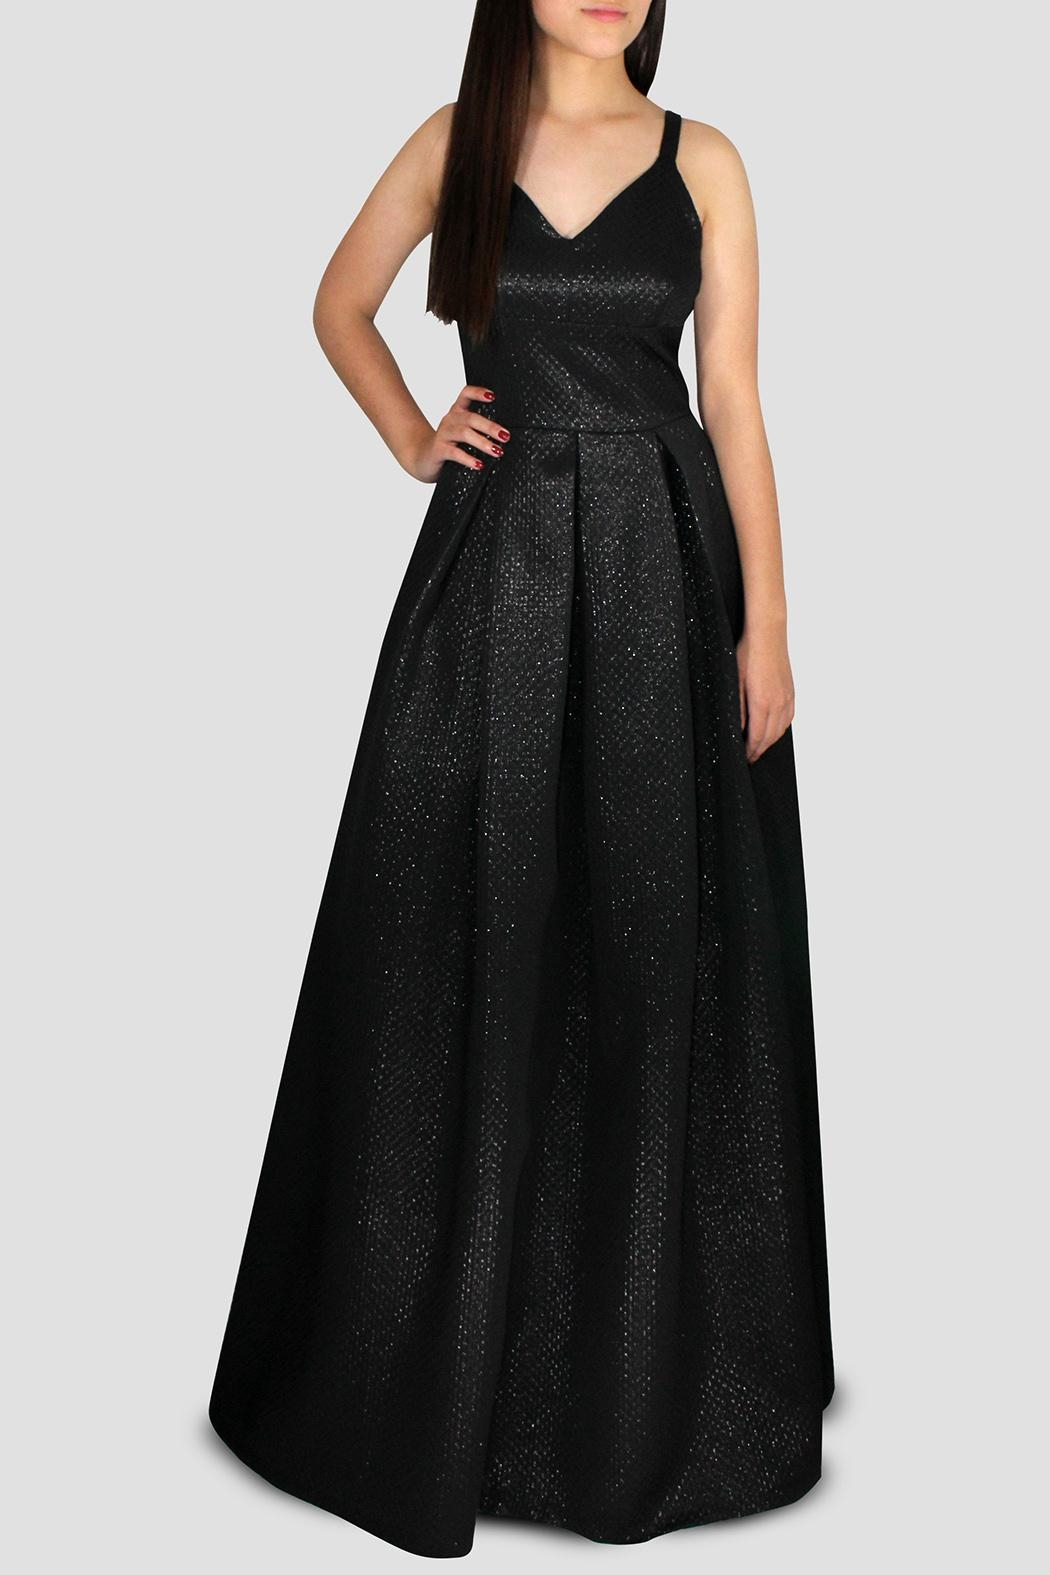 SoZu V-Neck Bell Gown - Main Image